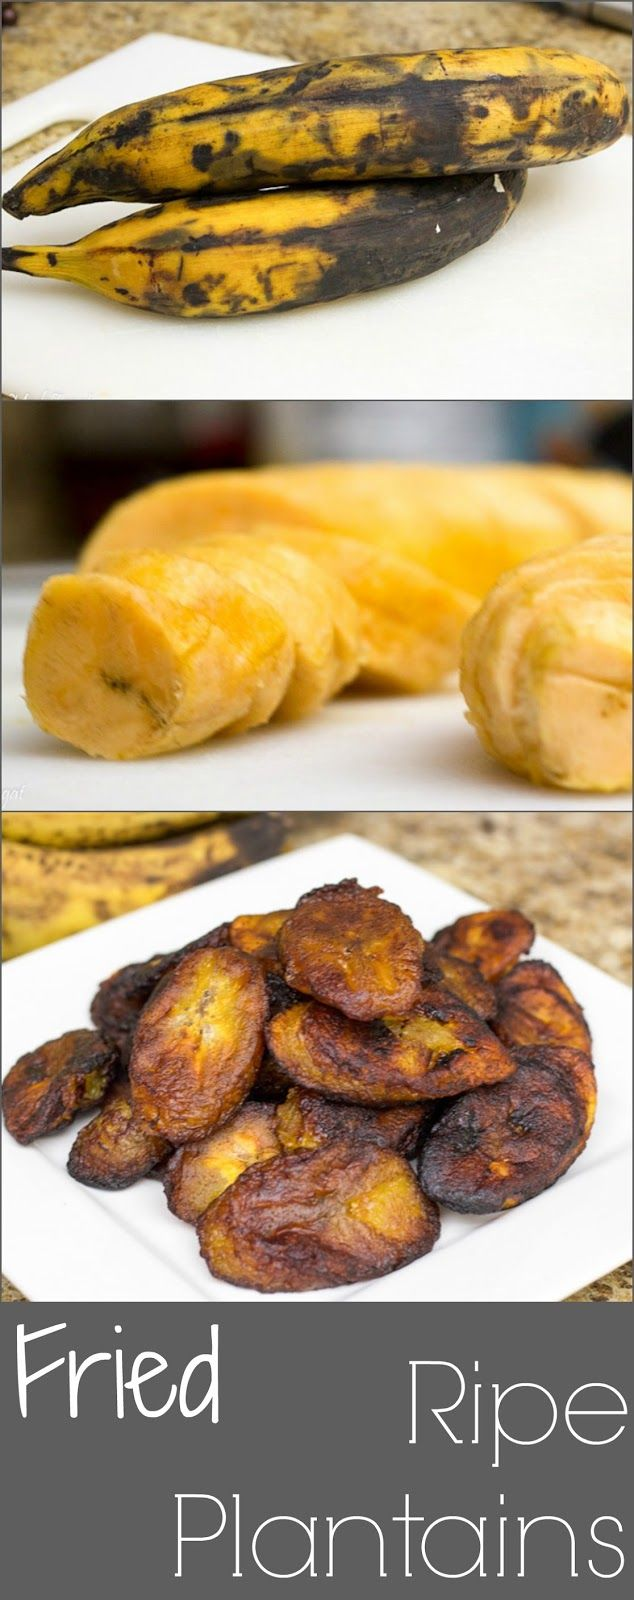 87 best african food images on pinterest kenyan recipes african an easy and quick recipe for making fried ripe plantains to be eaten as a side forumfinder Choice Image